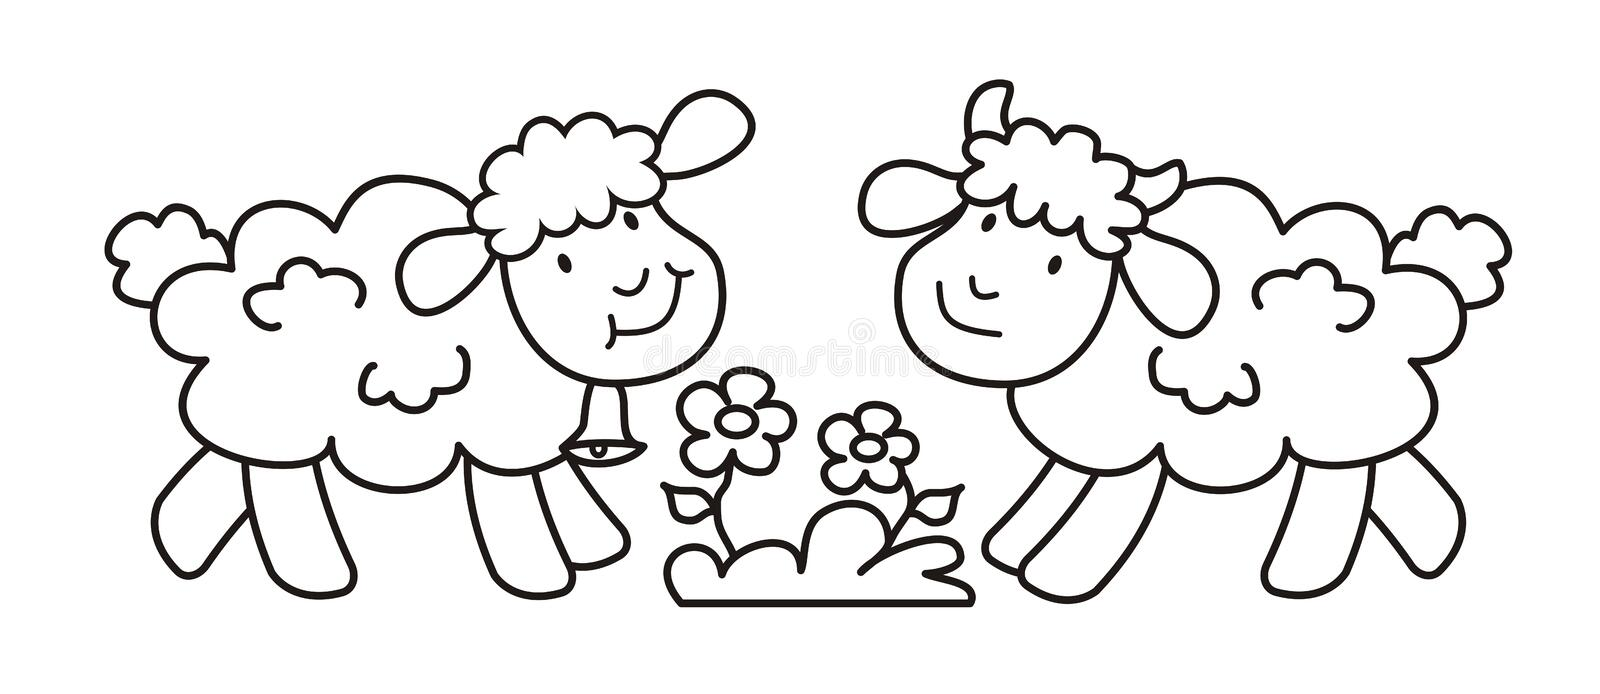 Sheep And Lamb Coloring Page Vector Icon Stock Vector Illustration Of Book Baby 137126231